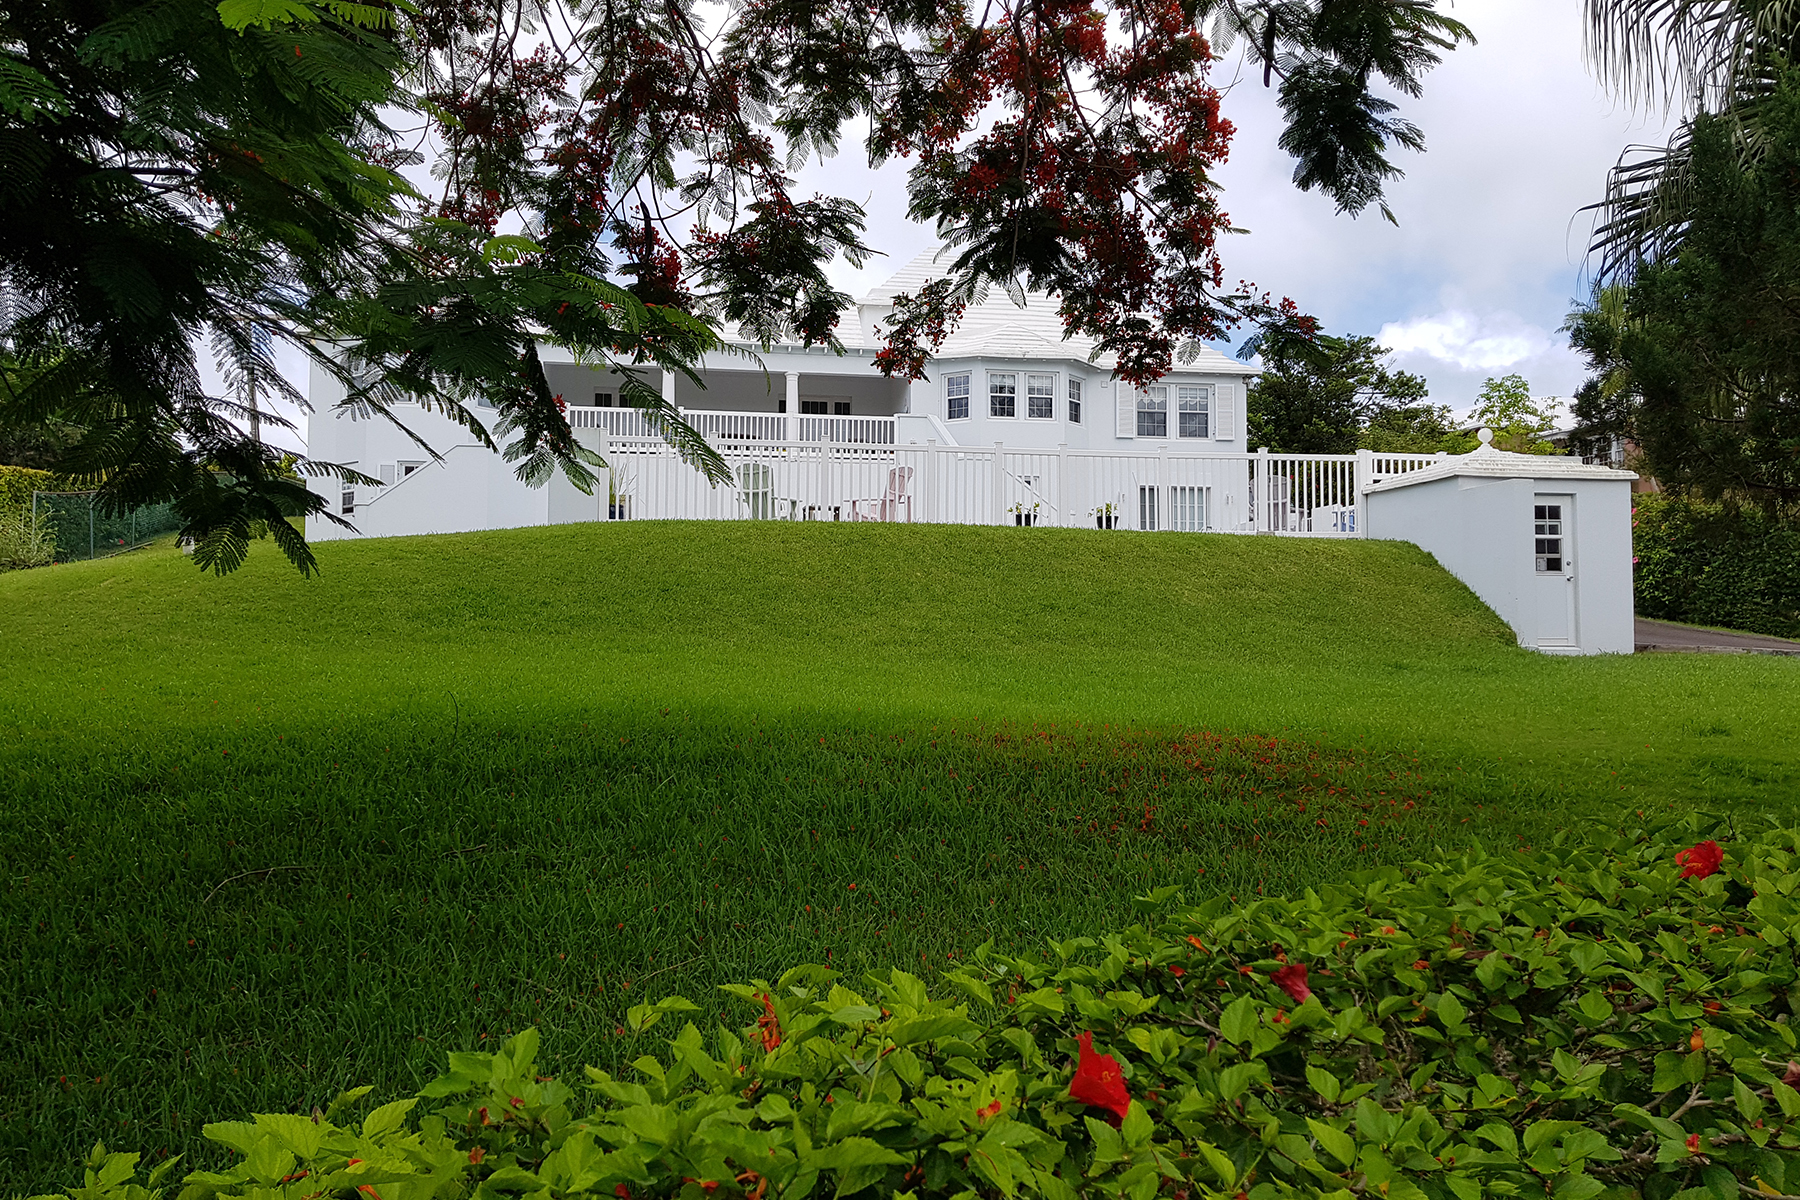 Single Family Homes for Sale at Rubicon & Caesar Cottage 2 Deepwood Drive Pembroke, Other Areas In Bermuda HM 05 Bermuda